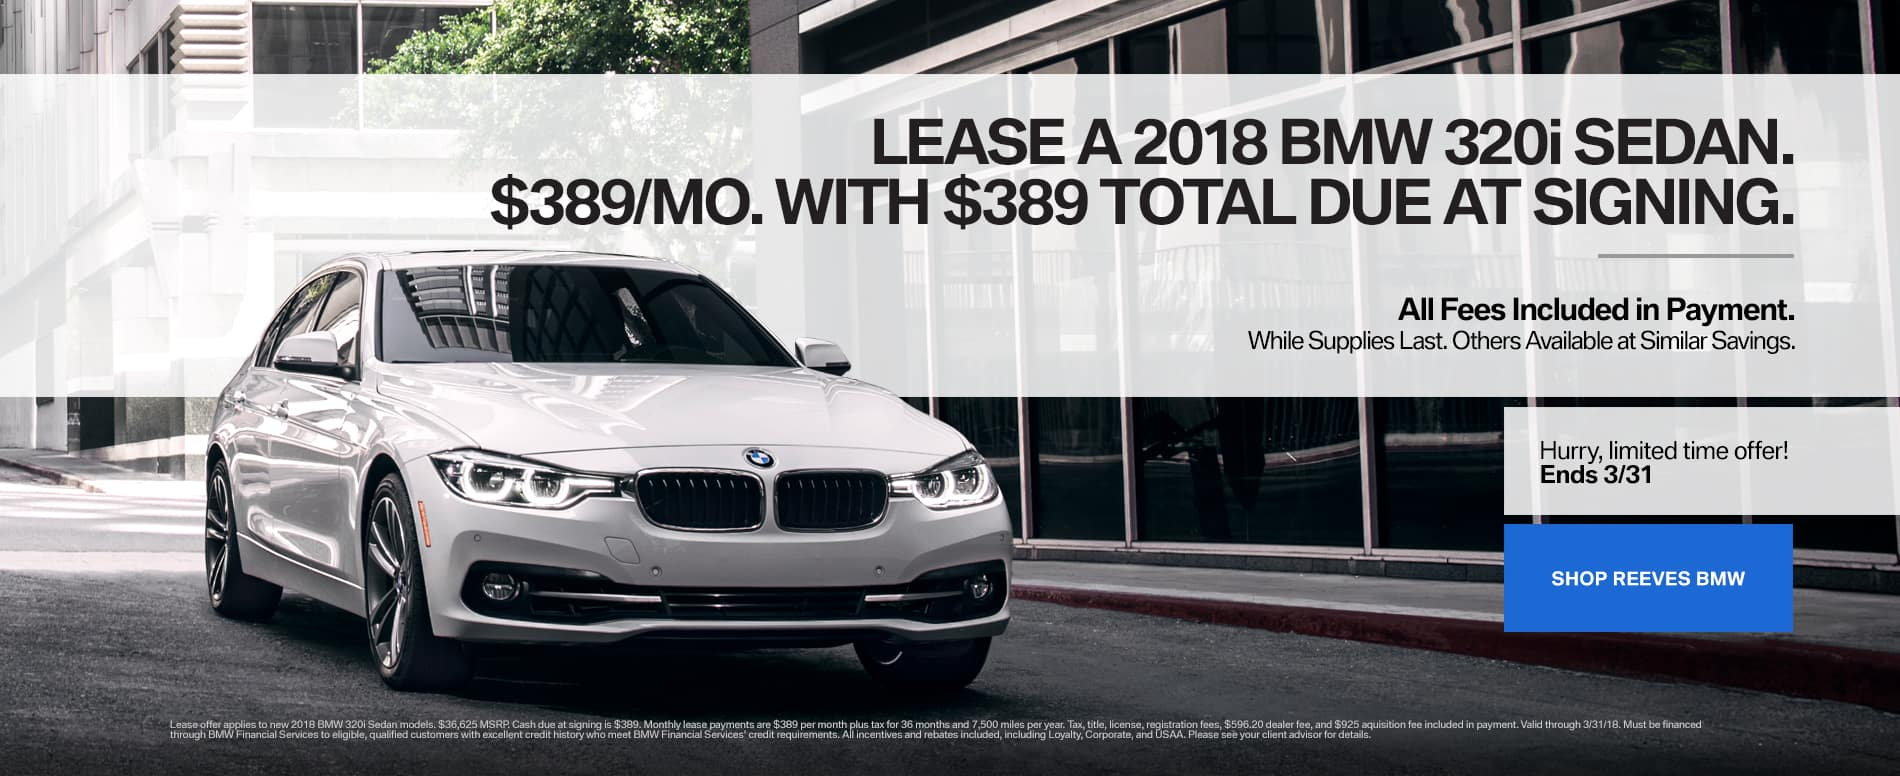 320i BMW March Lease Special